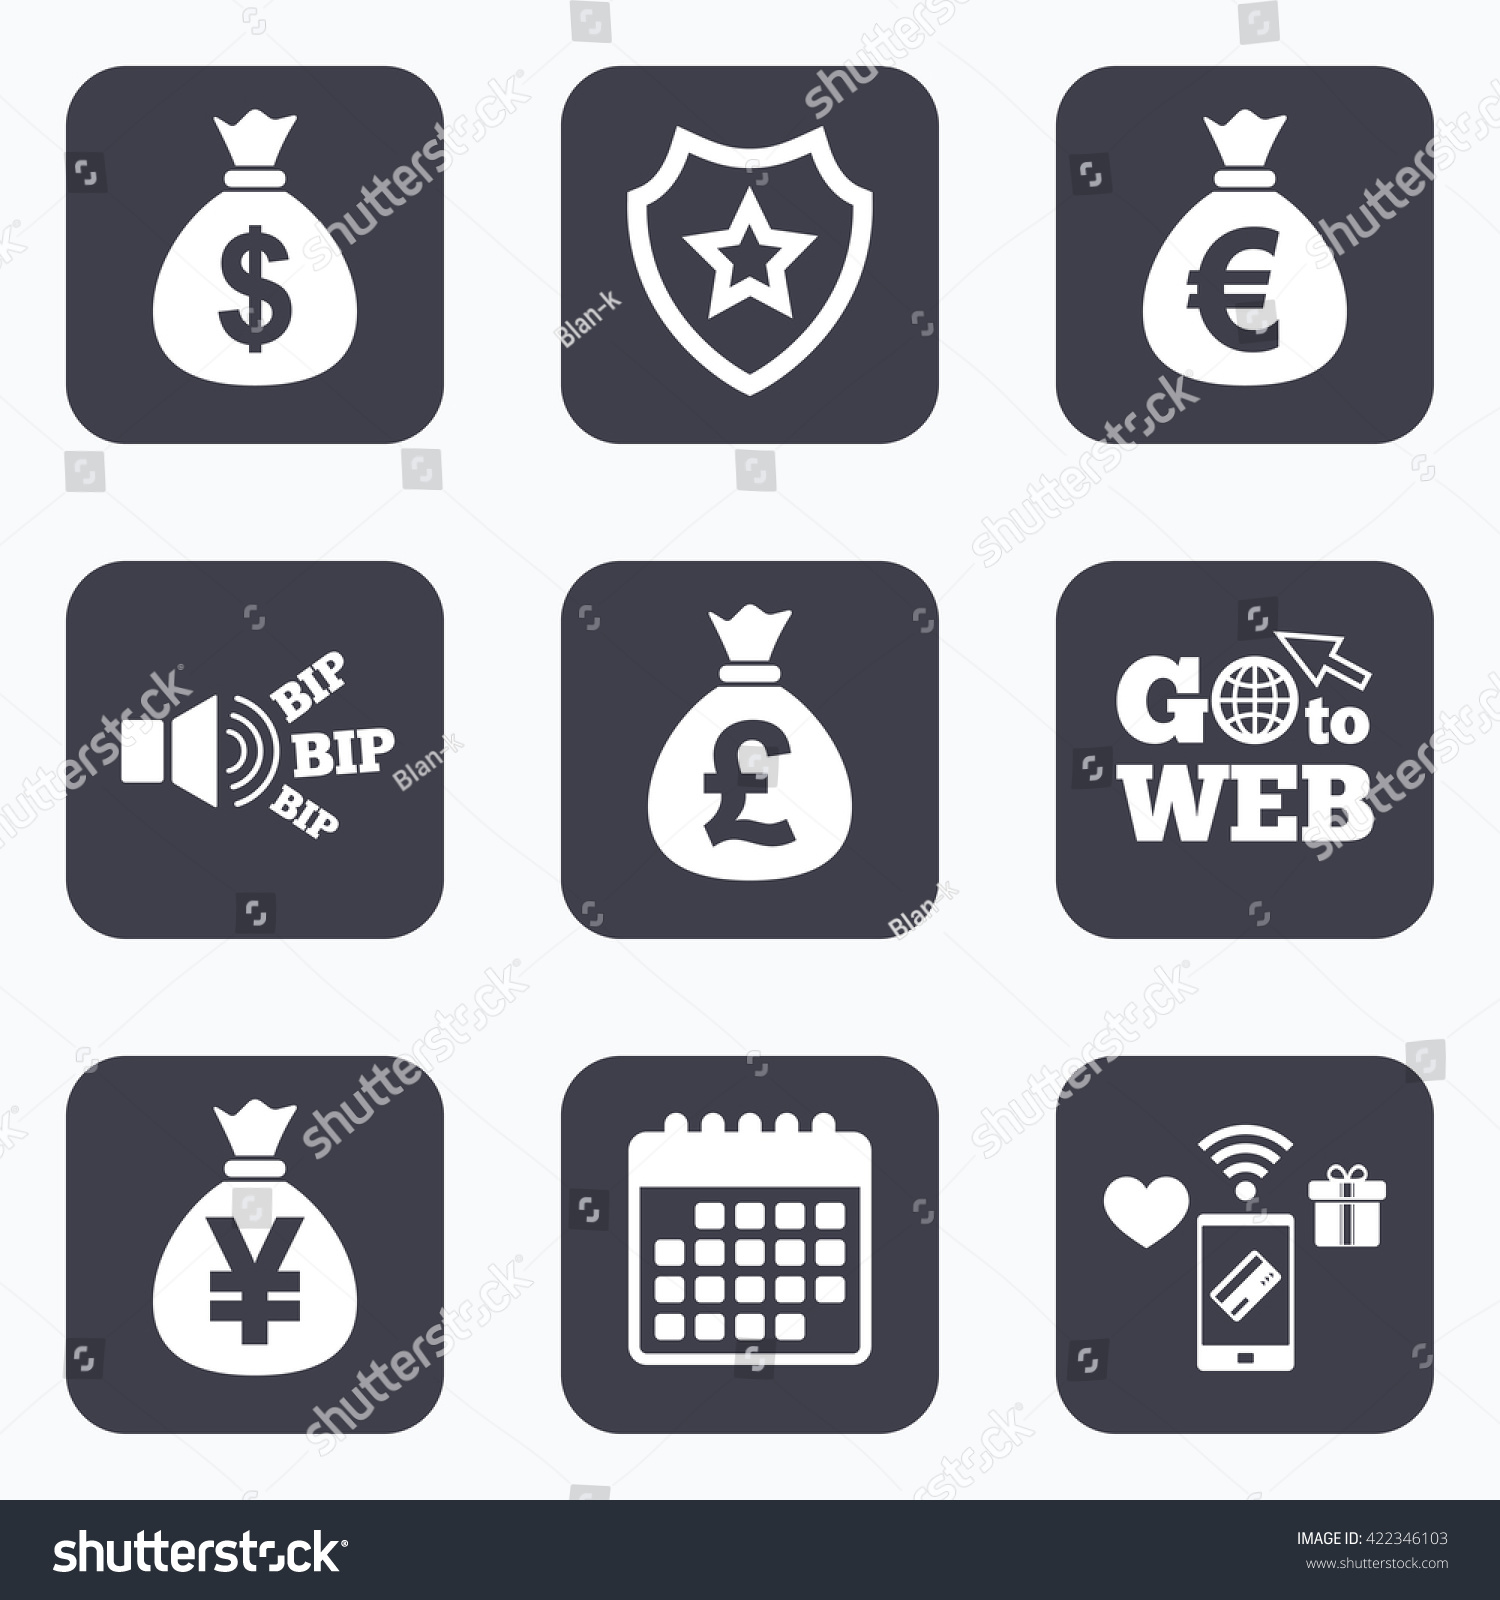 Mobile Payments Wifi Calendar Icons Money Stock Illustration